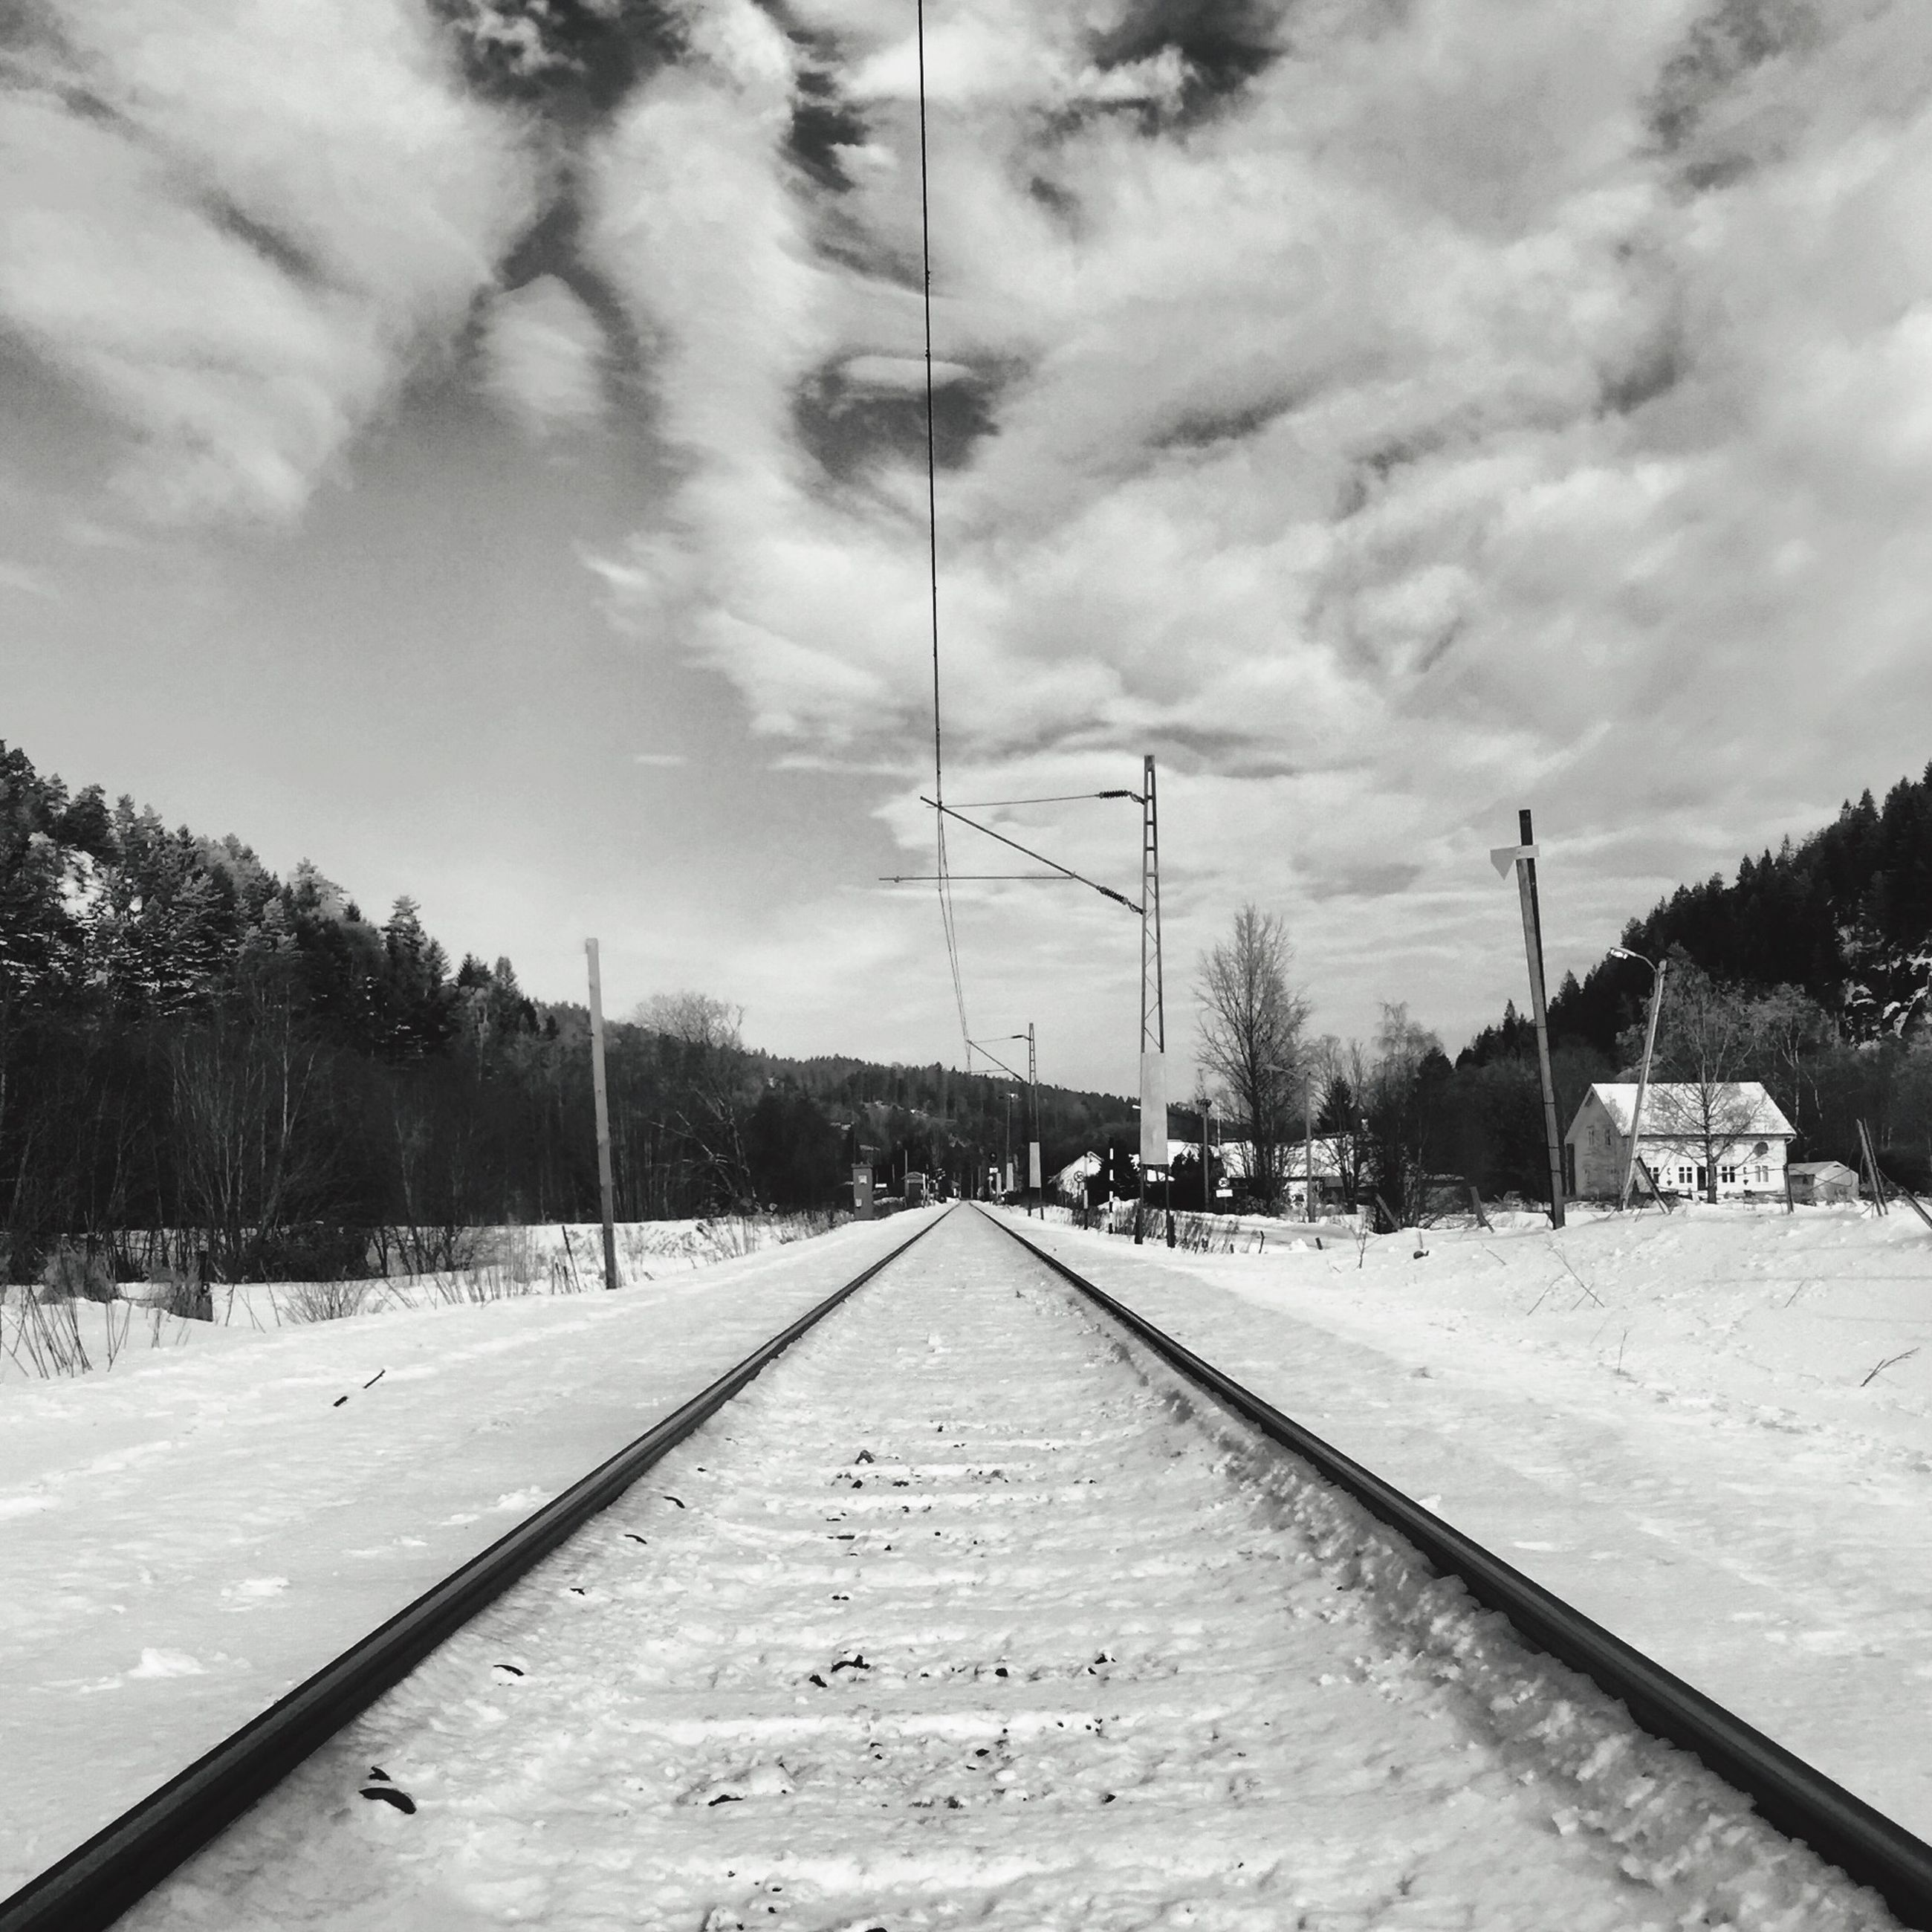 the way forward, transportation, sky, vanishing point, road, diminishing perspective, cloud - sky, tree, road marking, street, cloudy, cloud, snow, day, empty road, outdoors, street light, nature, weather, no people